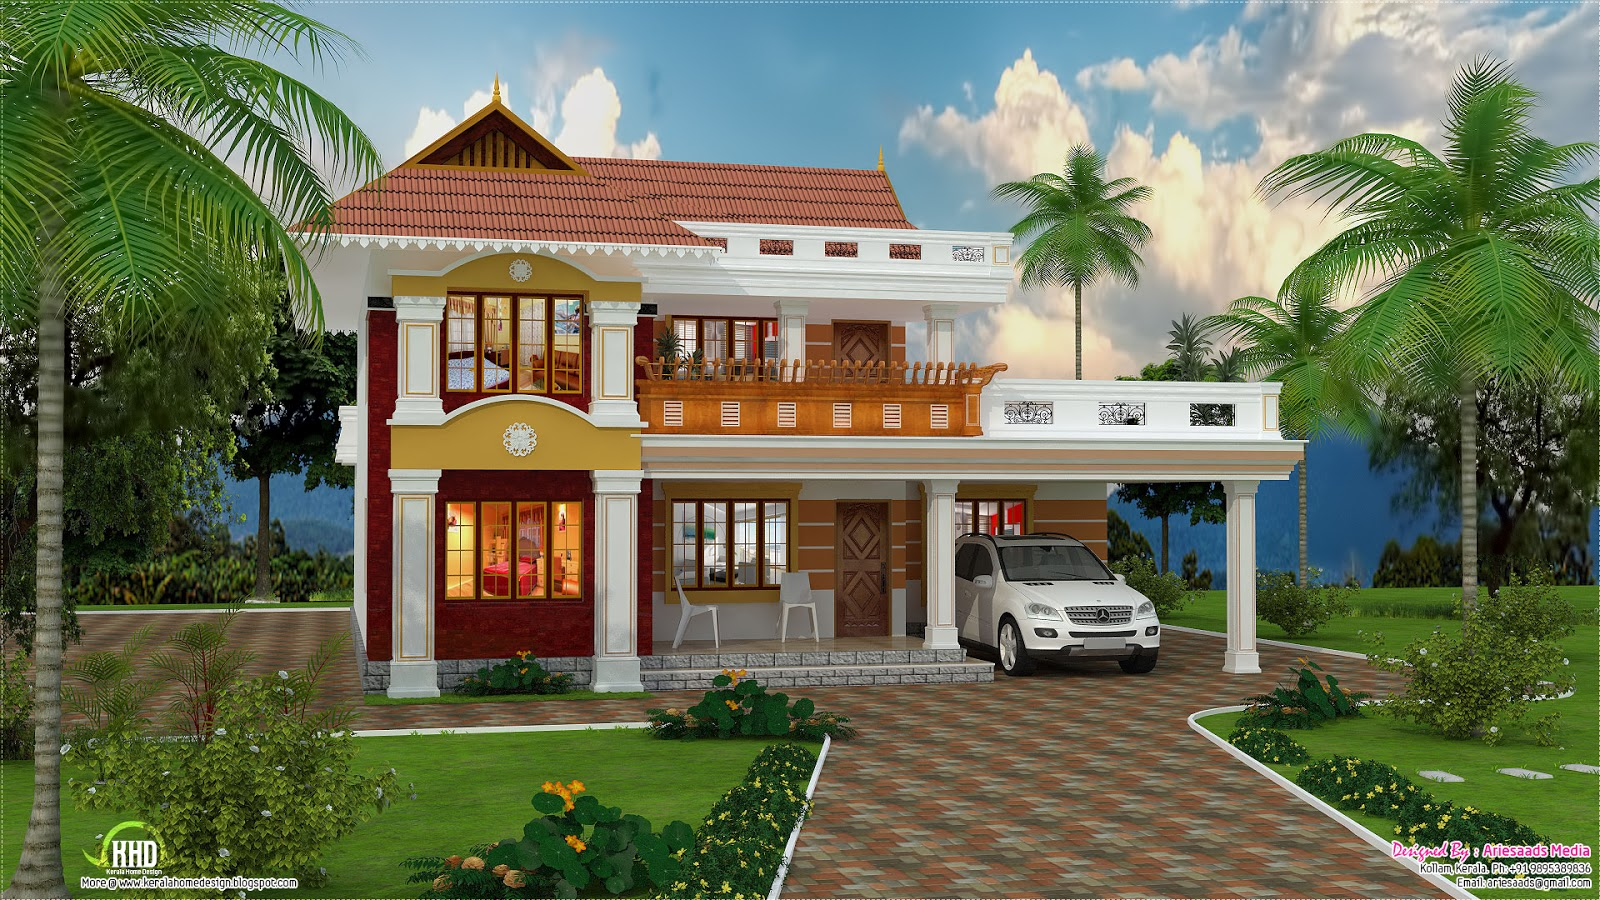 2700 beautiful villa design kerala home design and floor plans. Black Bedroom Furniture Sets. Home Design Ideas